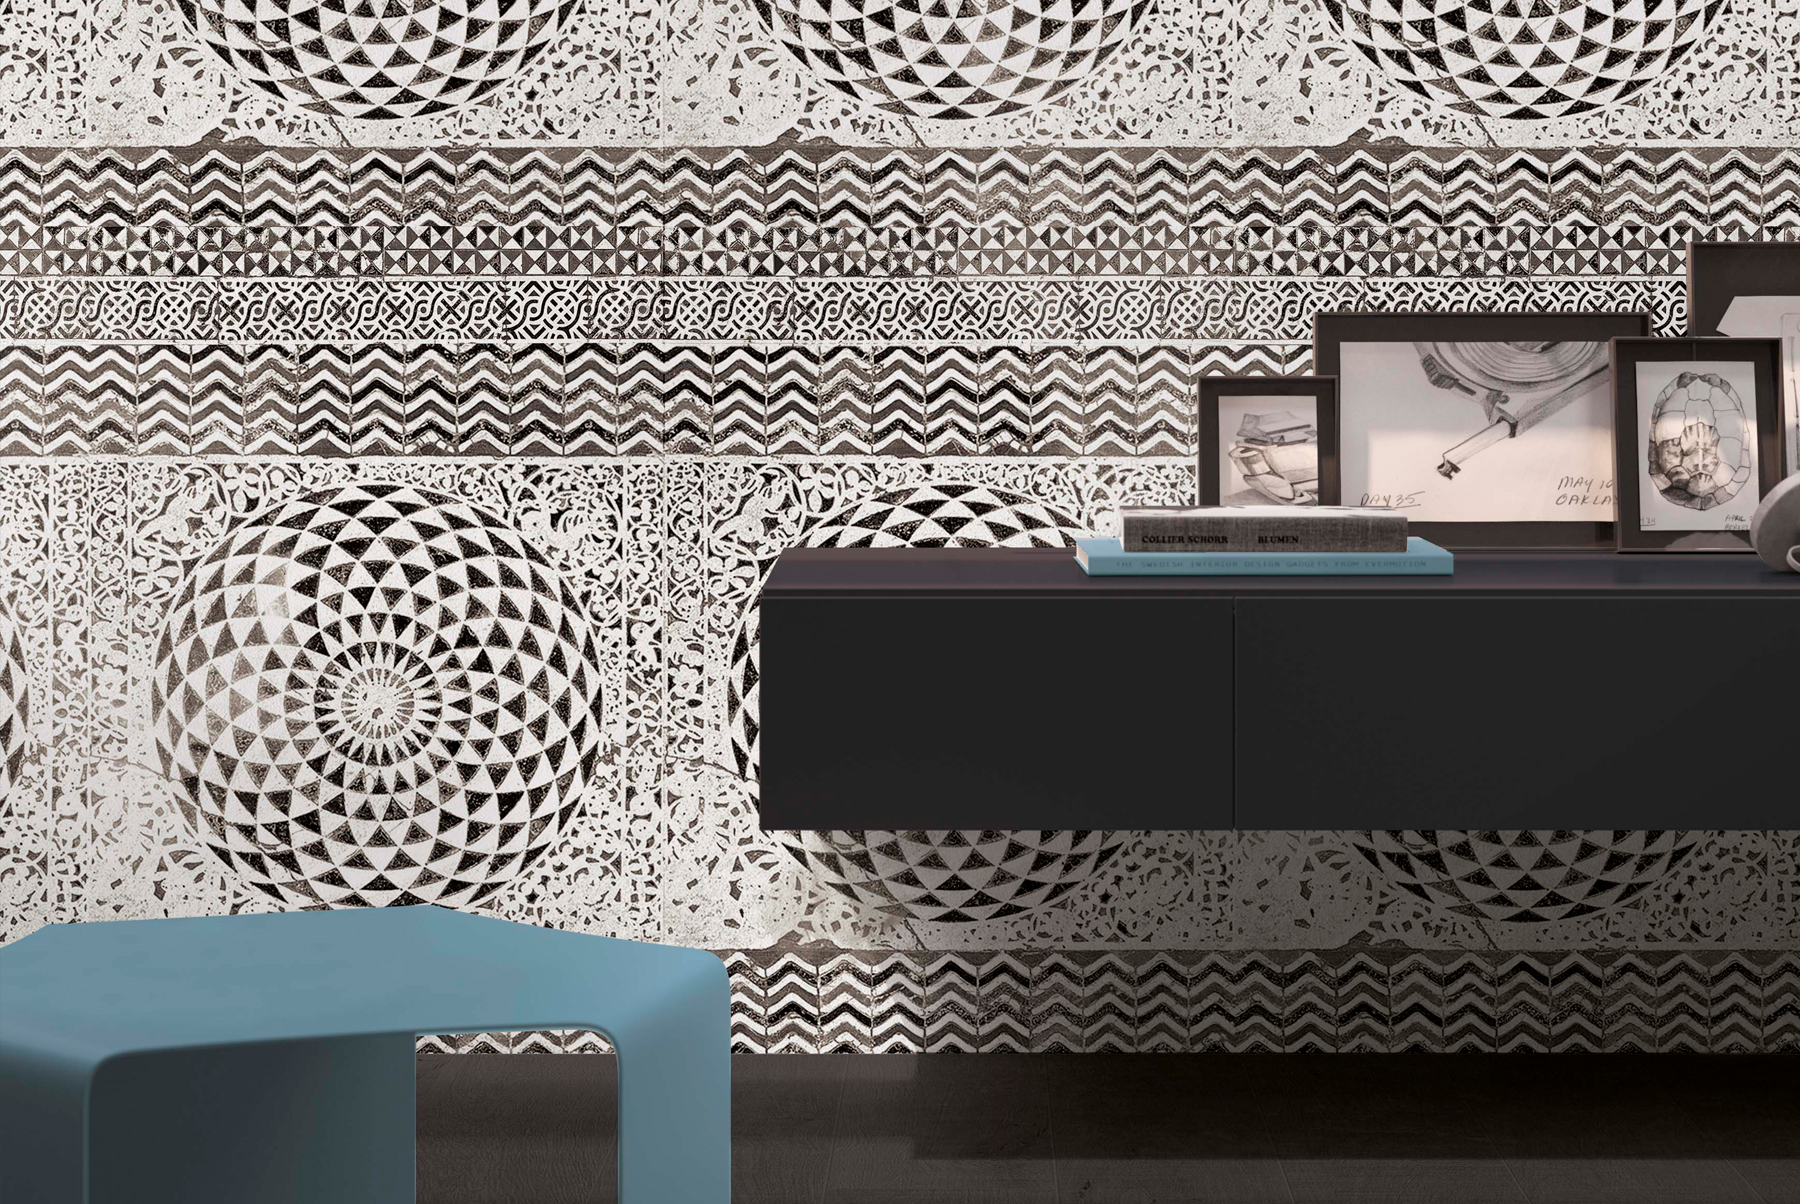 TILES-WIDE-N-STYLE-INSET-10-1800x1204